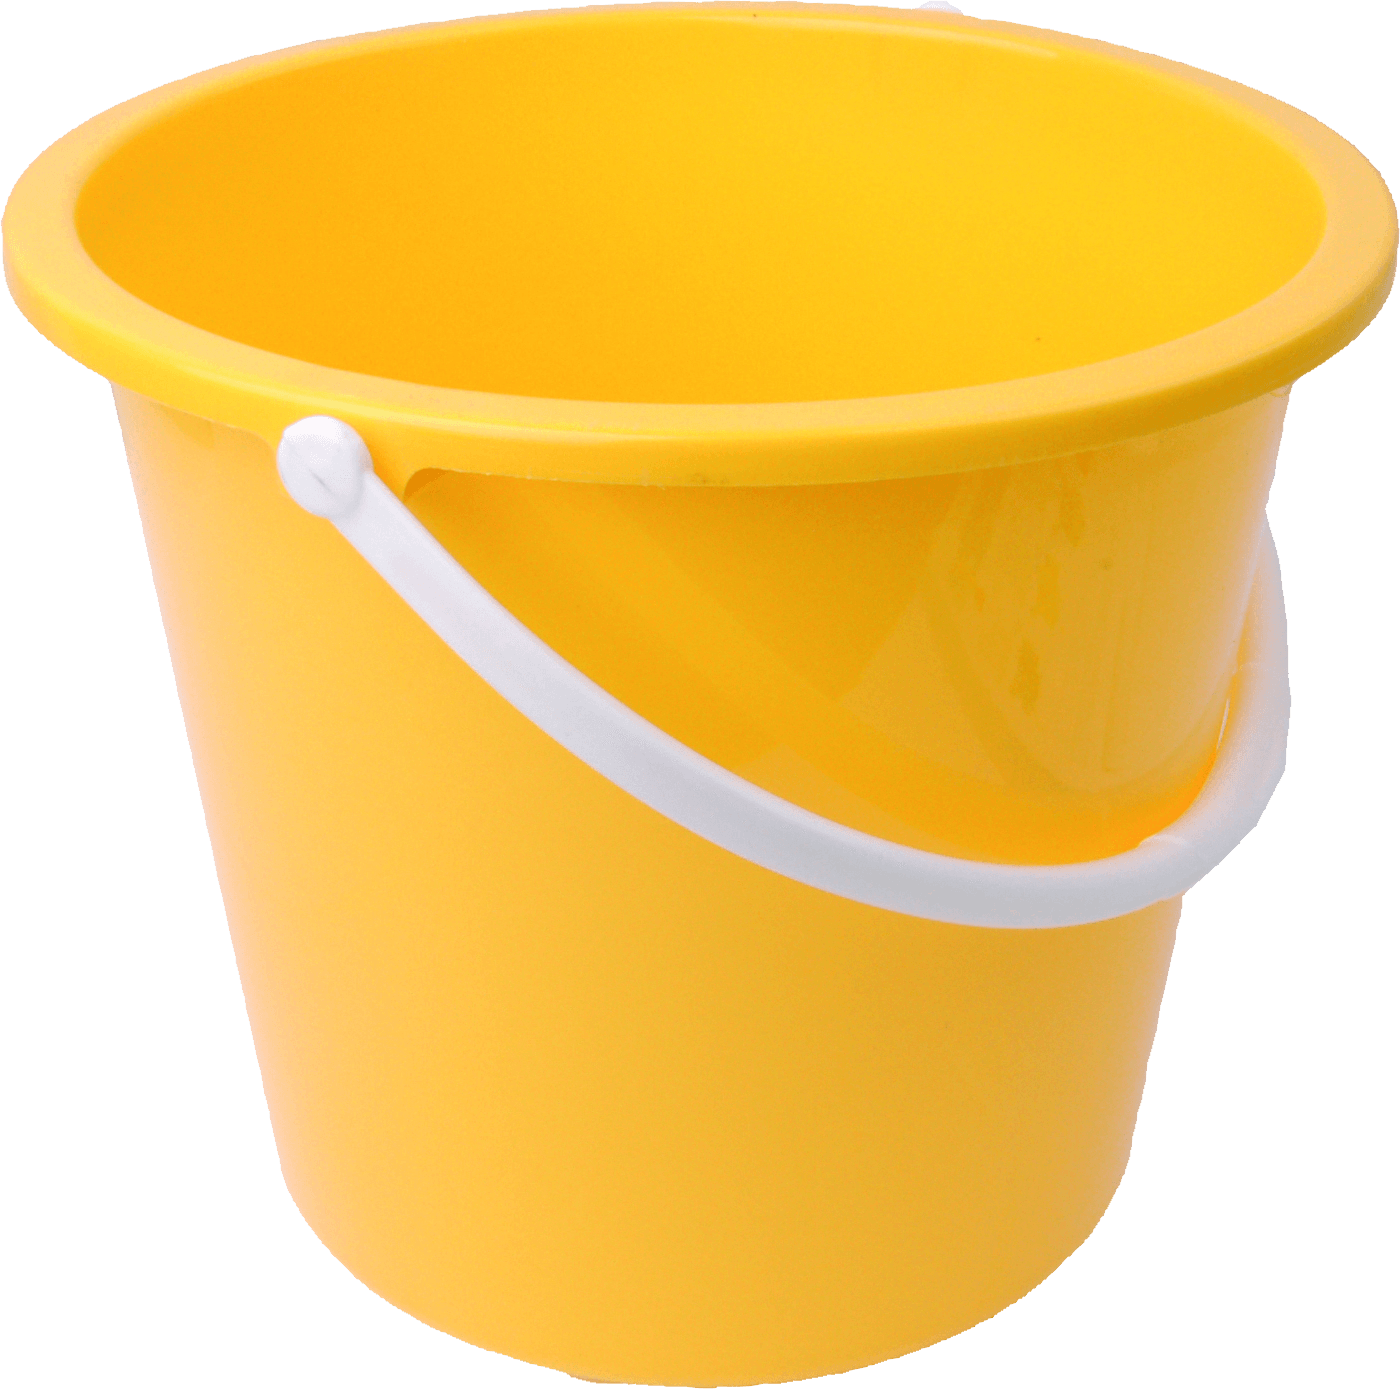 Yellow Bucket - Bucket PNG